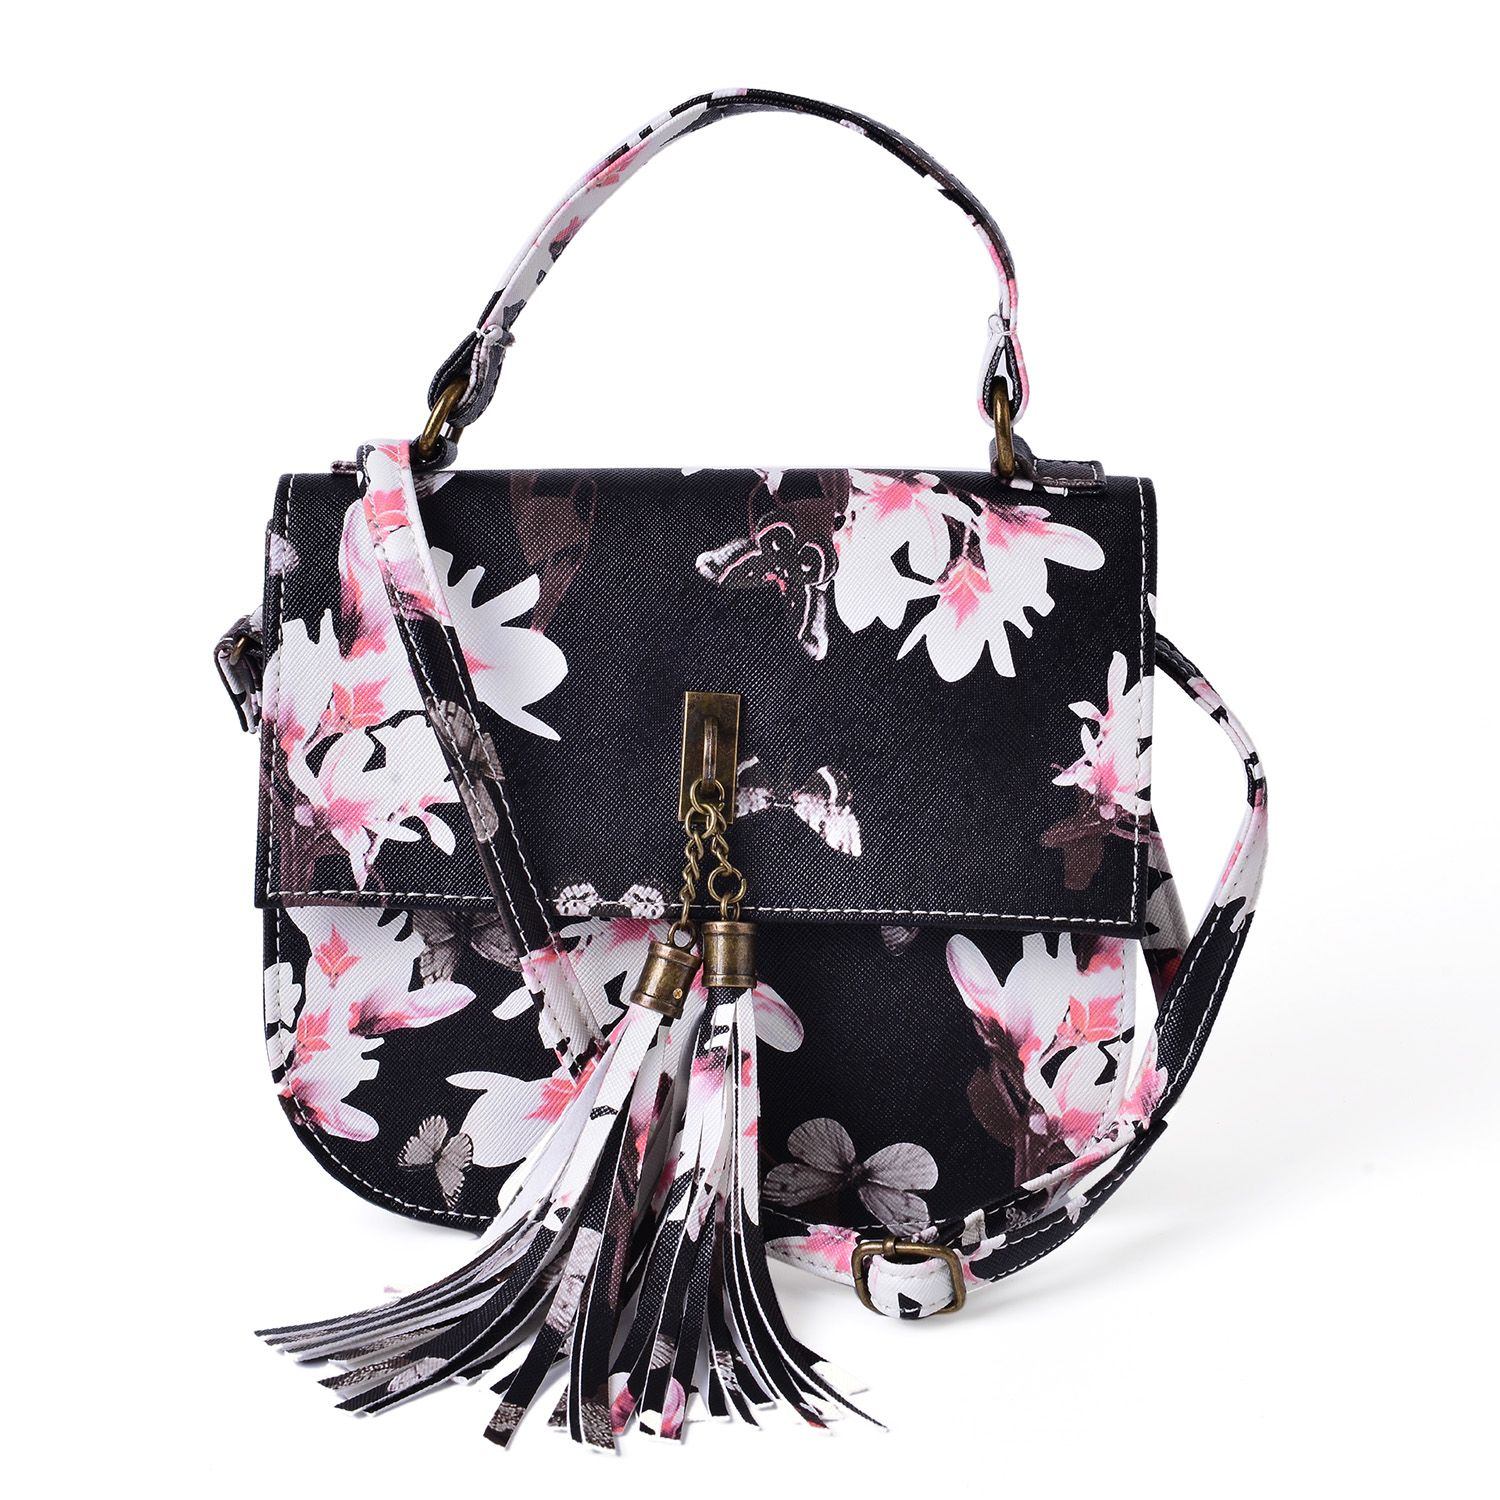 Black Floral Print Faux Leather Crossbody Bag (8x2.5x7 In) | Handbags | Fashion-accessories ...